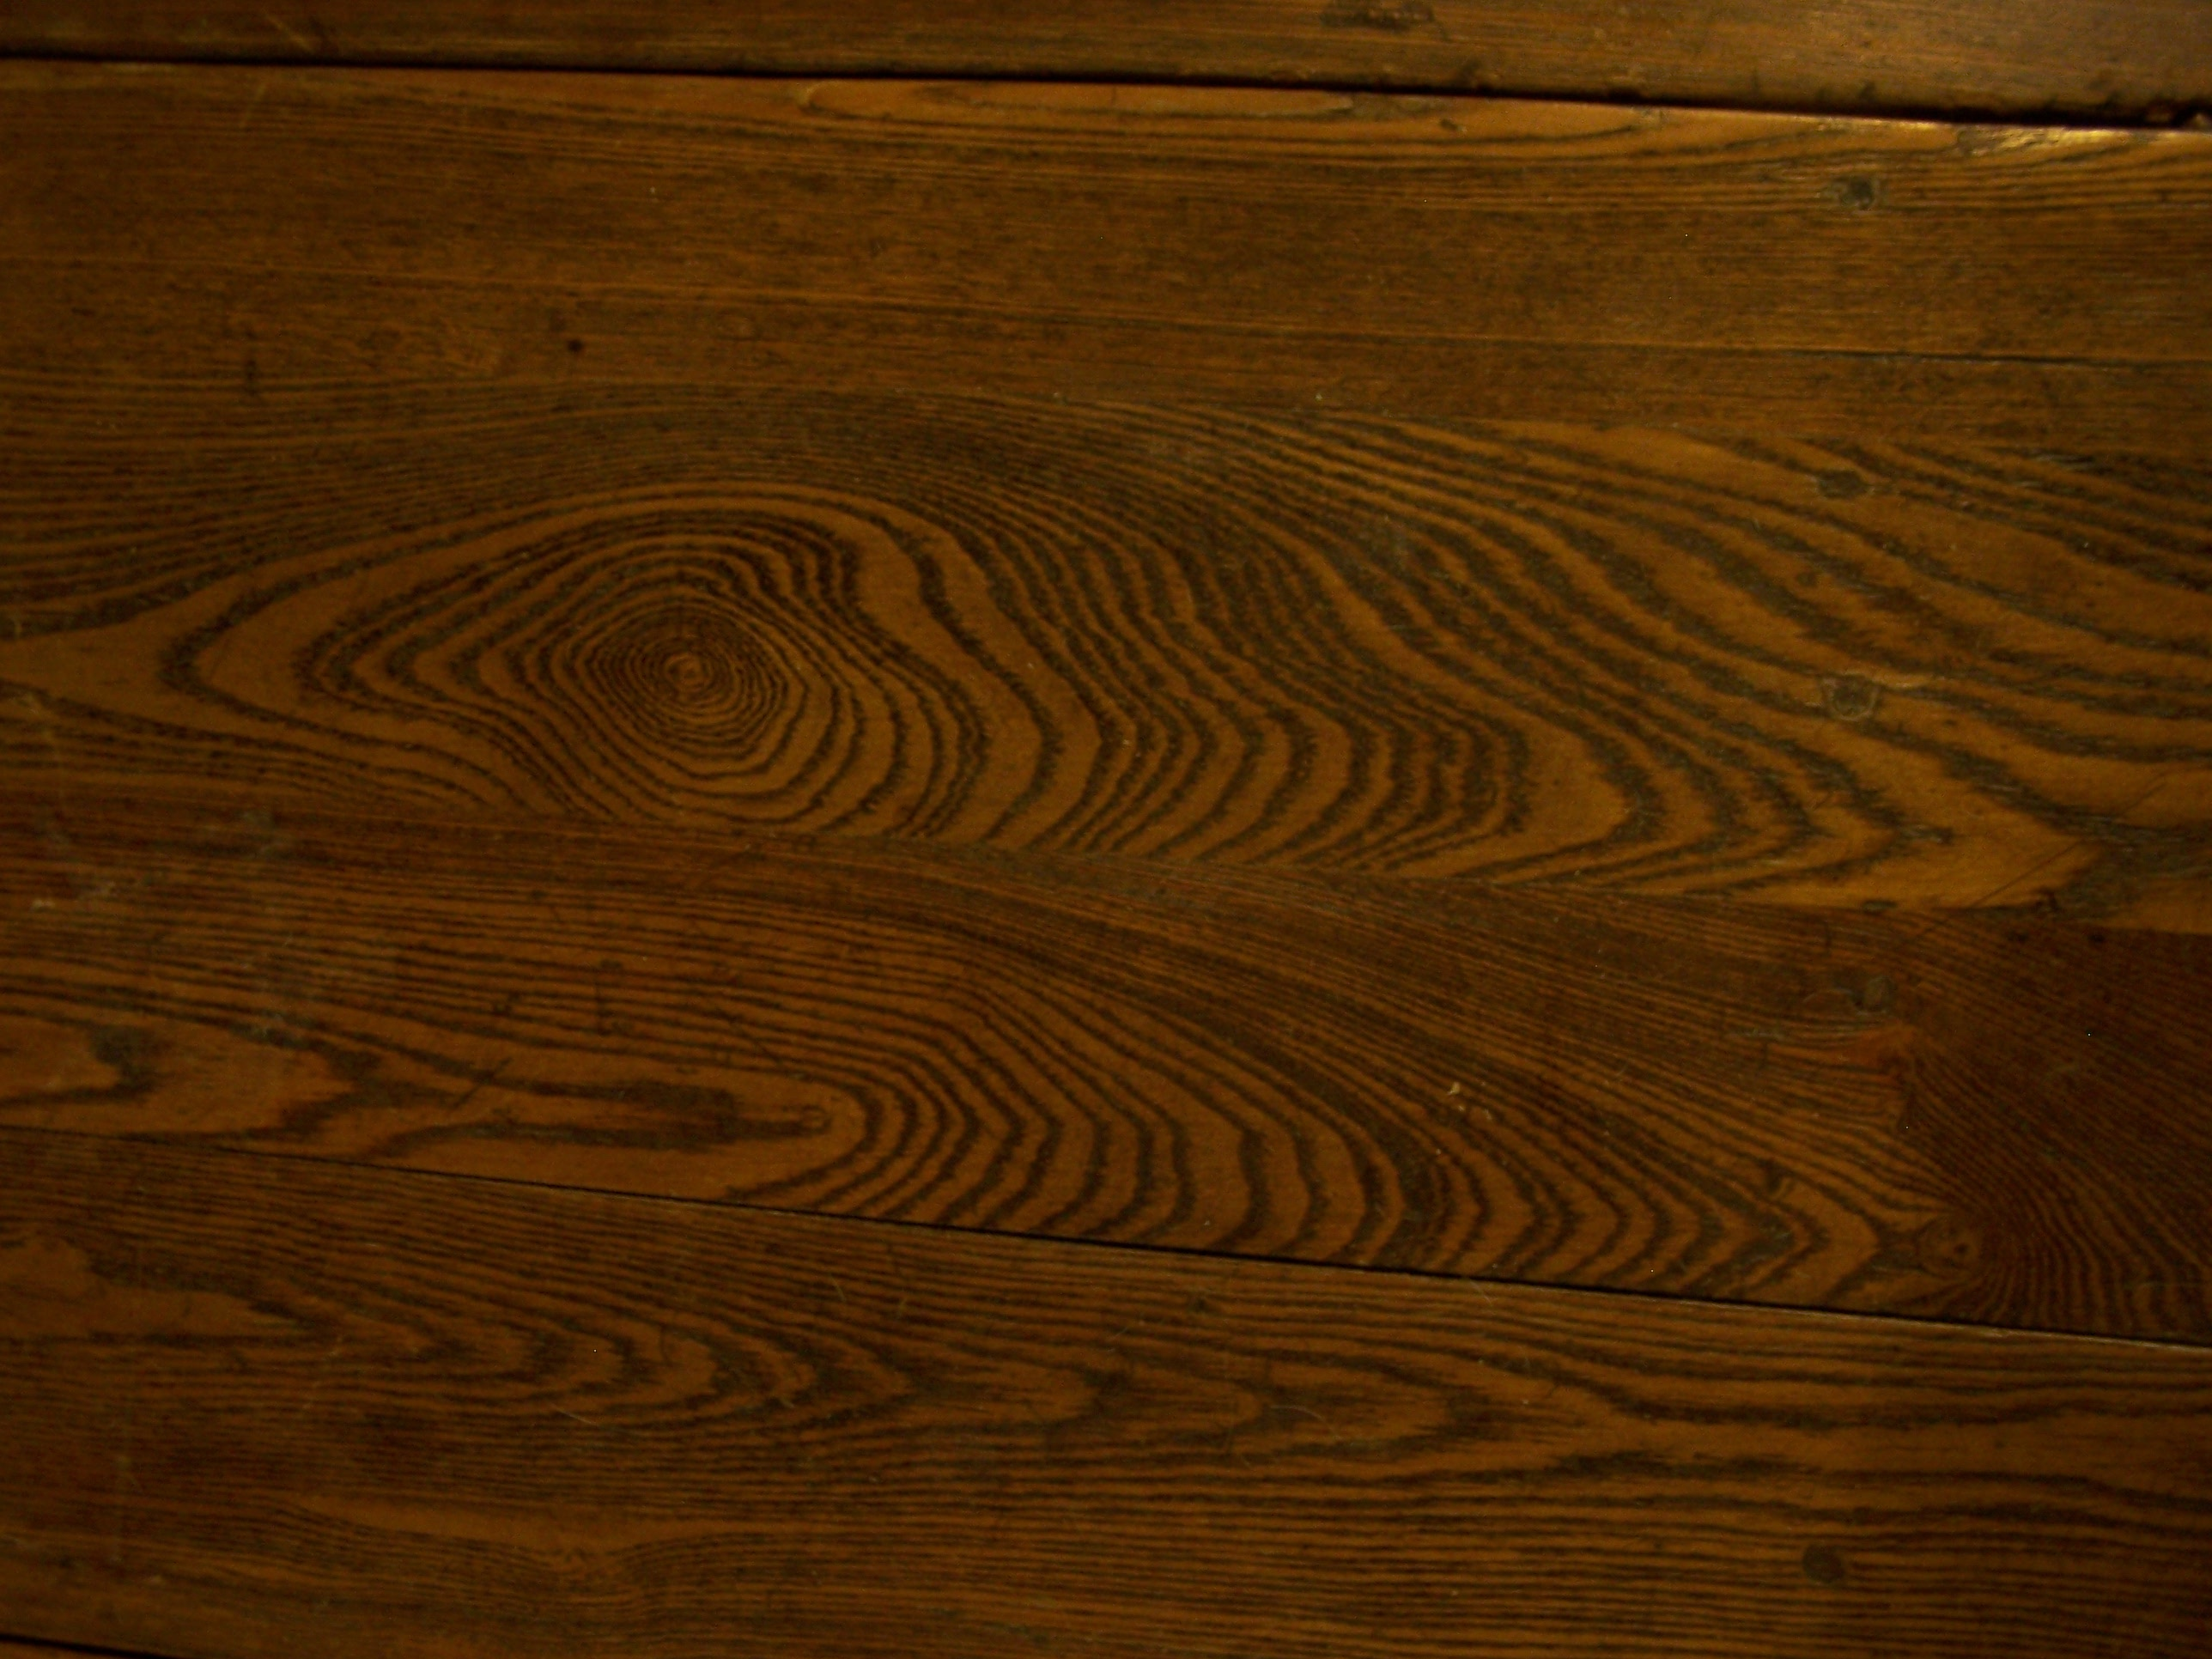 furniture  chestnut vs oak drop leaf table  the ebay community - here are some pics of the wood grain and the table terrible pic of thetable which is in my basement  needs to be refinished so please forgiveme for